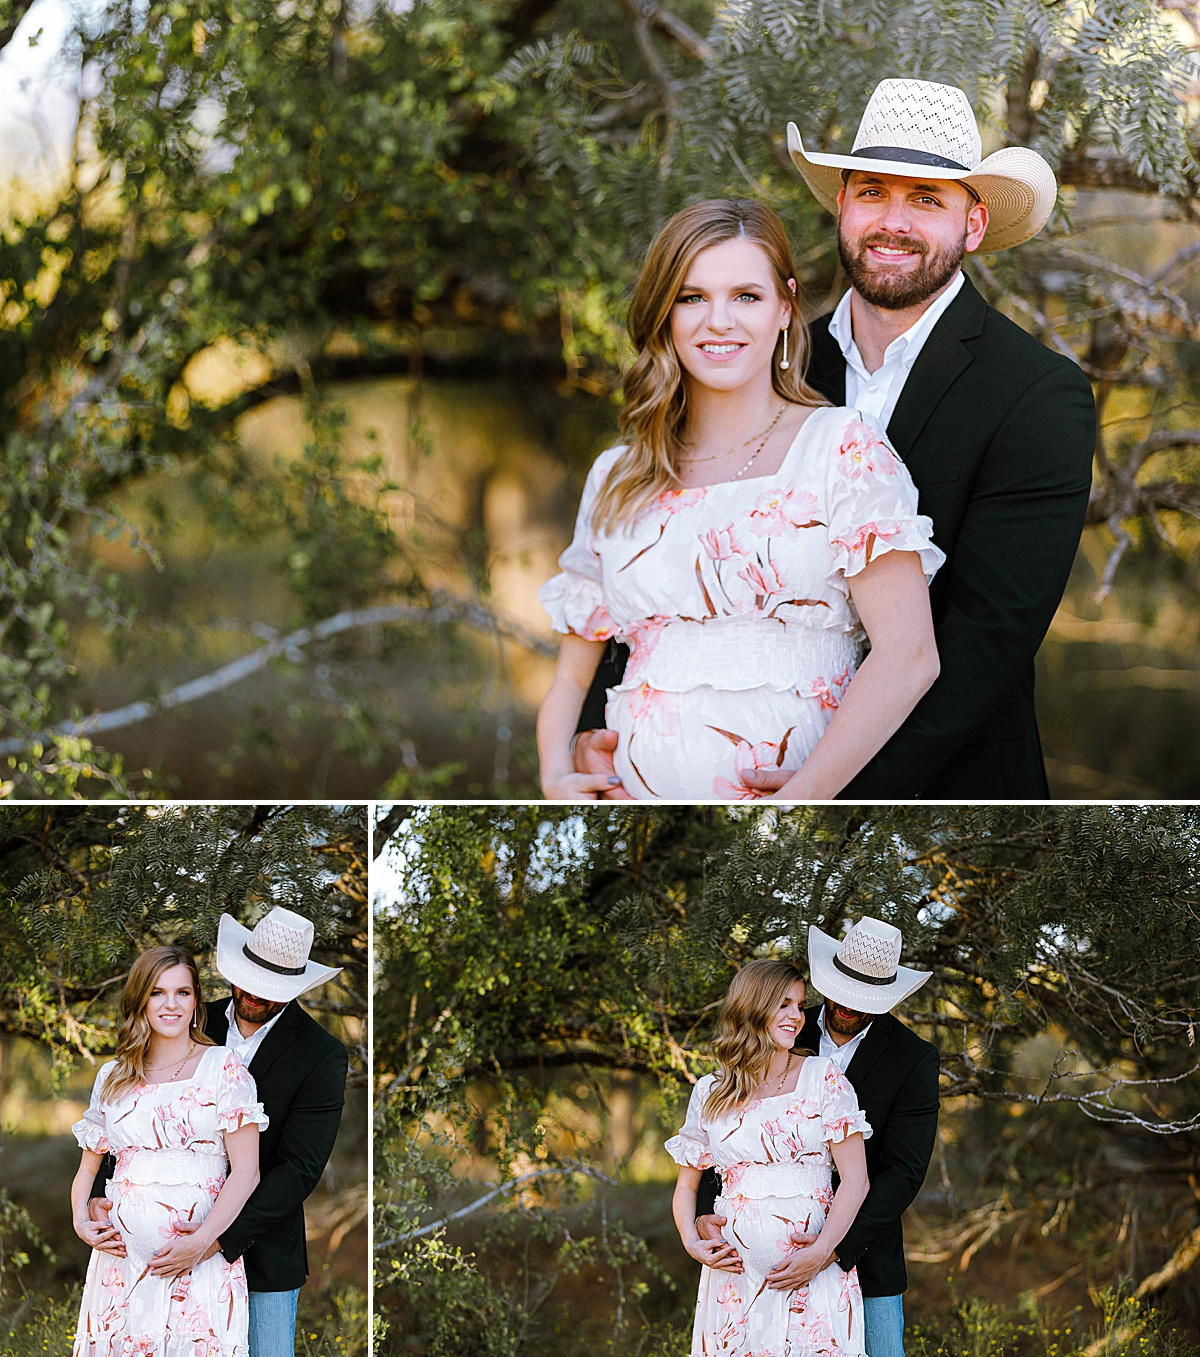 maternity-photo-session-lavernia-texas-carly-barton-photography_0014.jpg